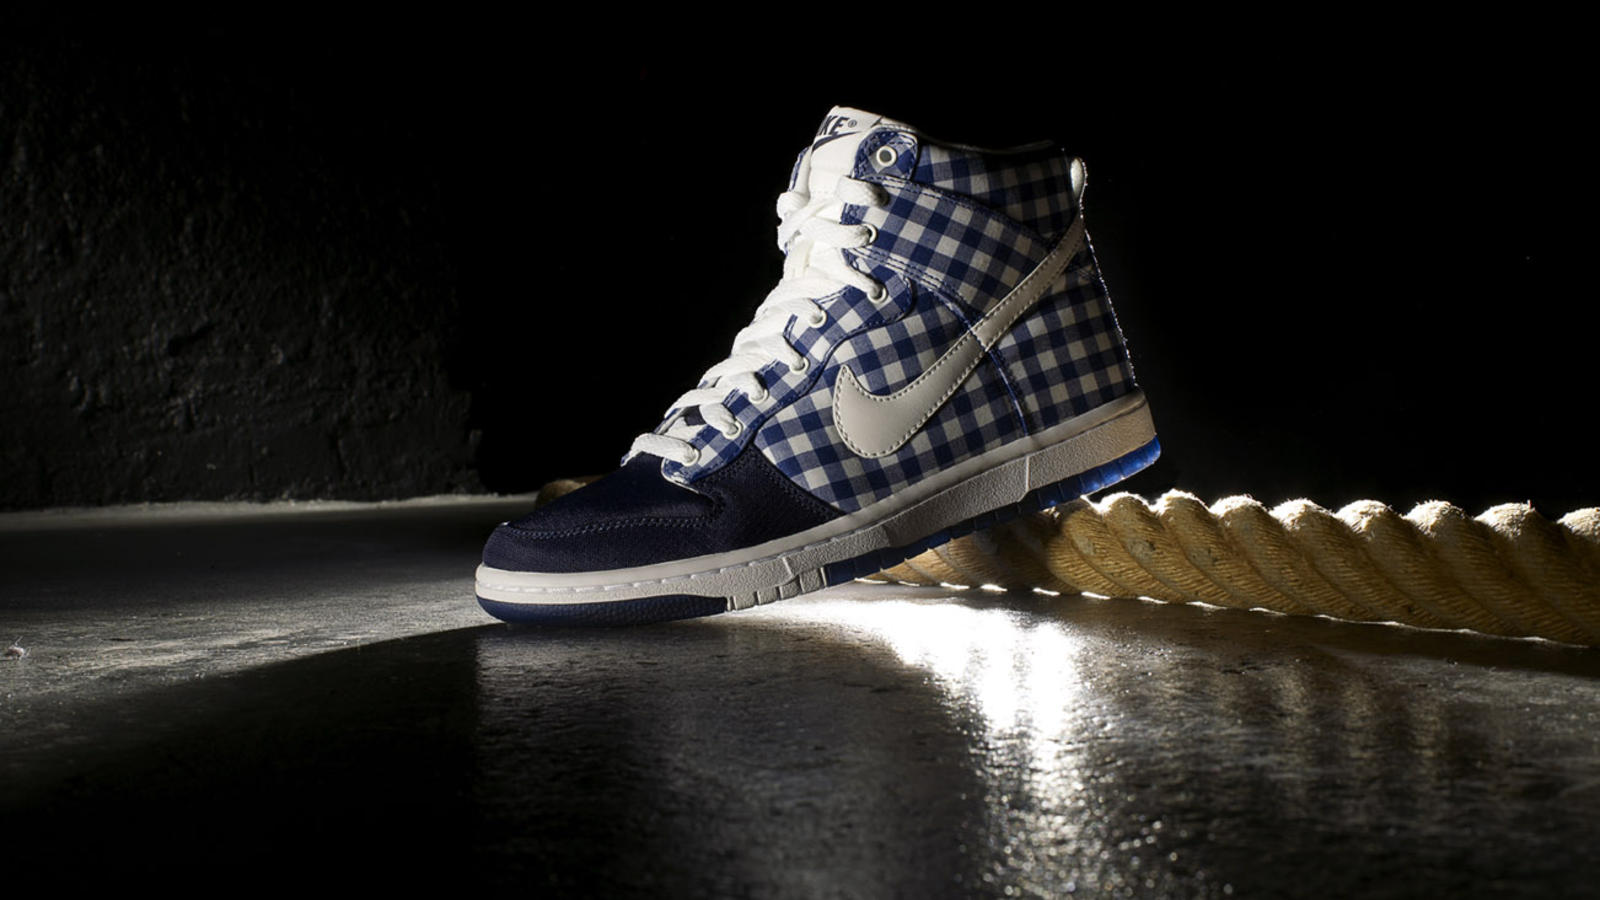 ccb127b1d0233 Fall Holiday 2009 Nike Sportswear collection - Nike News